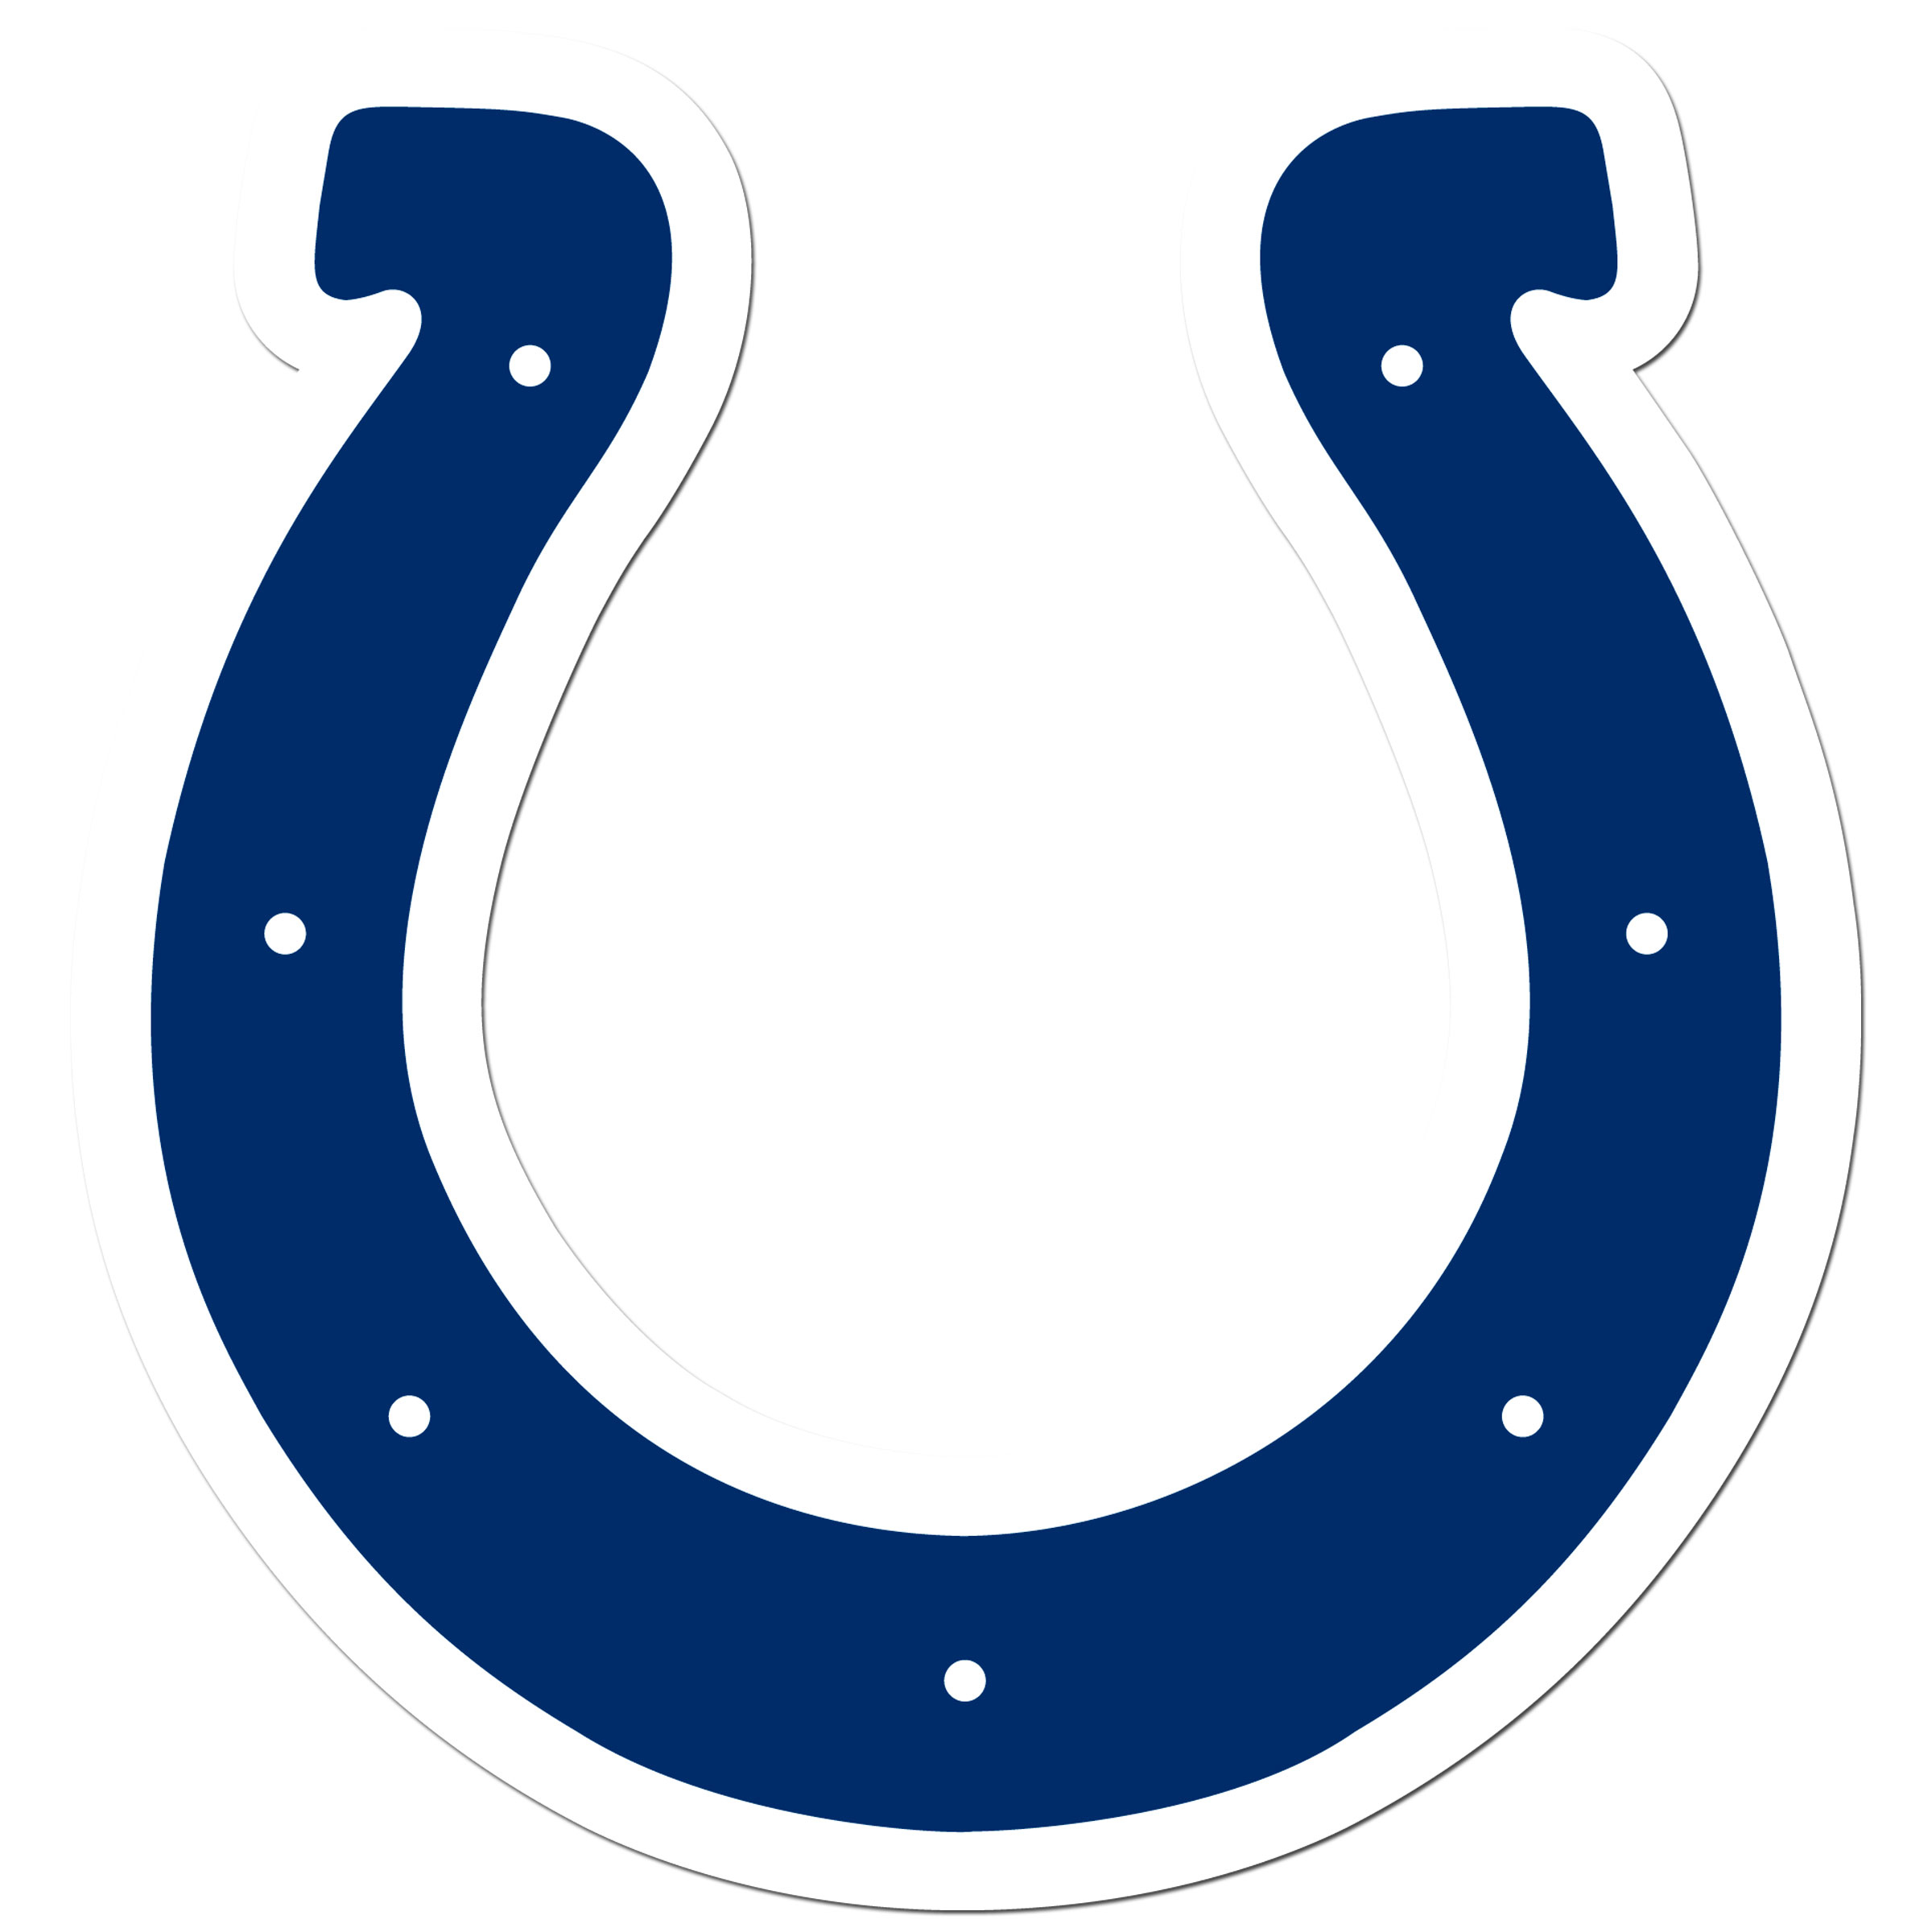 Indianapolis Colts 8 inch Auto Decal - This bold, 8 inch Indianapolis Colts is a great way to show off your team pride! The low tack vinyl decal is easily positioned and adjusted to make sure you get that logo in just the right spot on your vehicle. Designed to be used on the outside of the window.